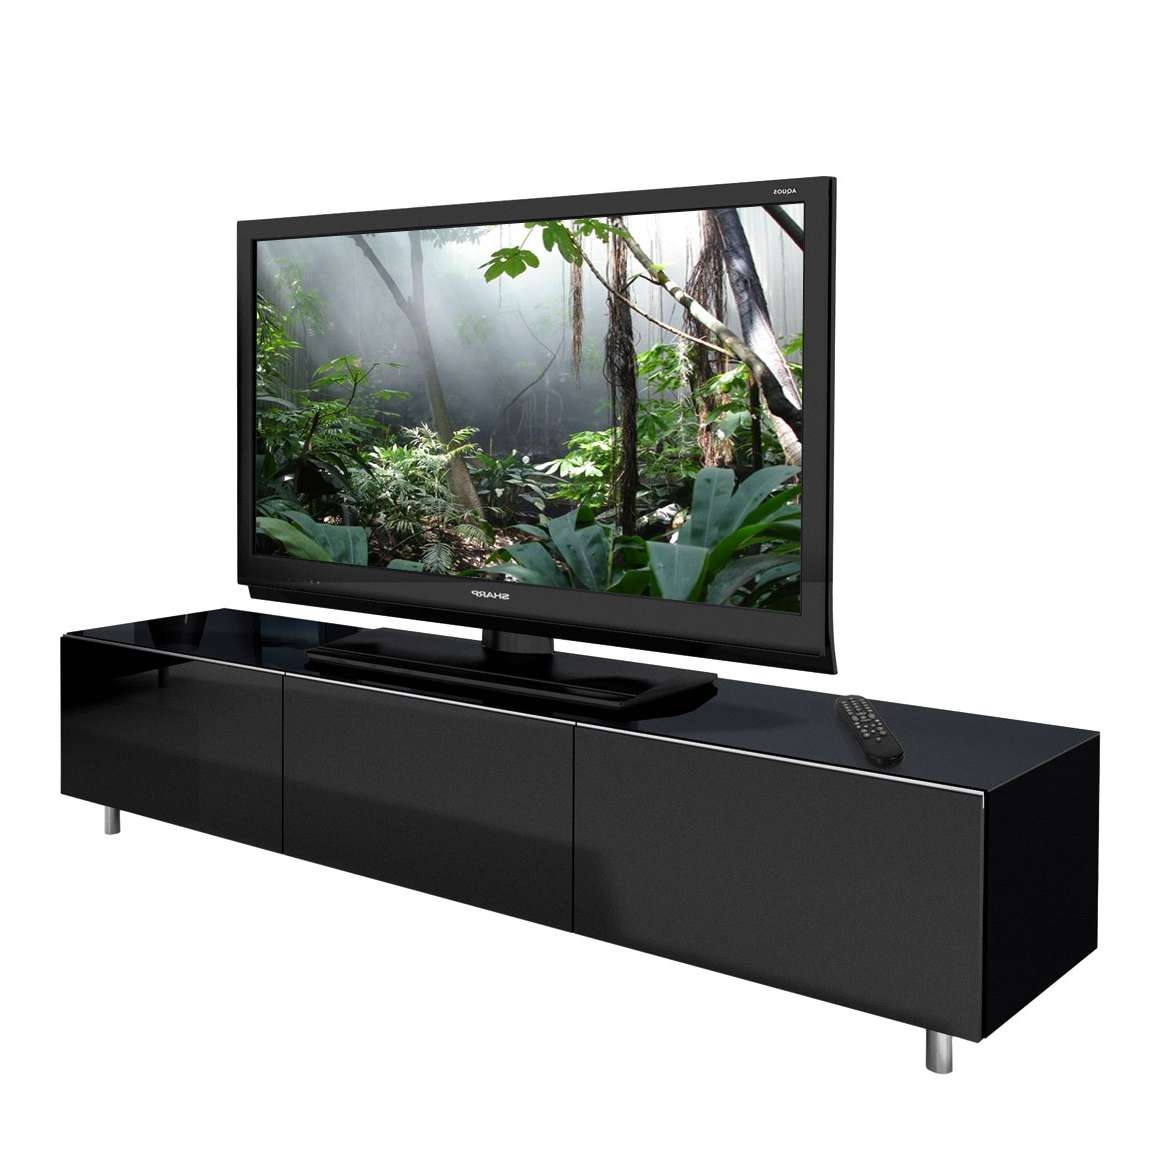 Spectral Just Racks Jrl1650S Gloss Black Tv Cabinet – Just Racks For Gloss Tv Stands (View 13 of 15)